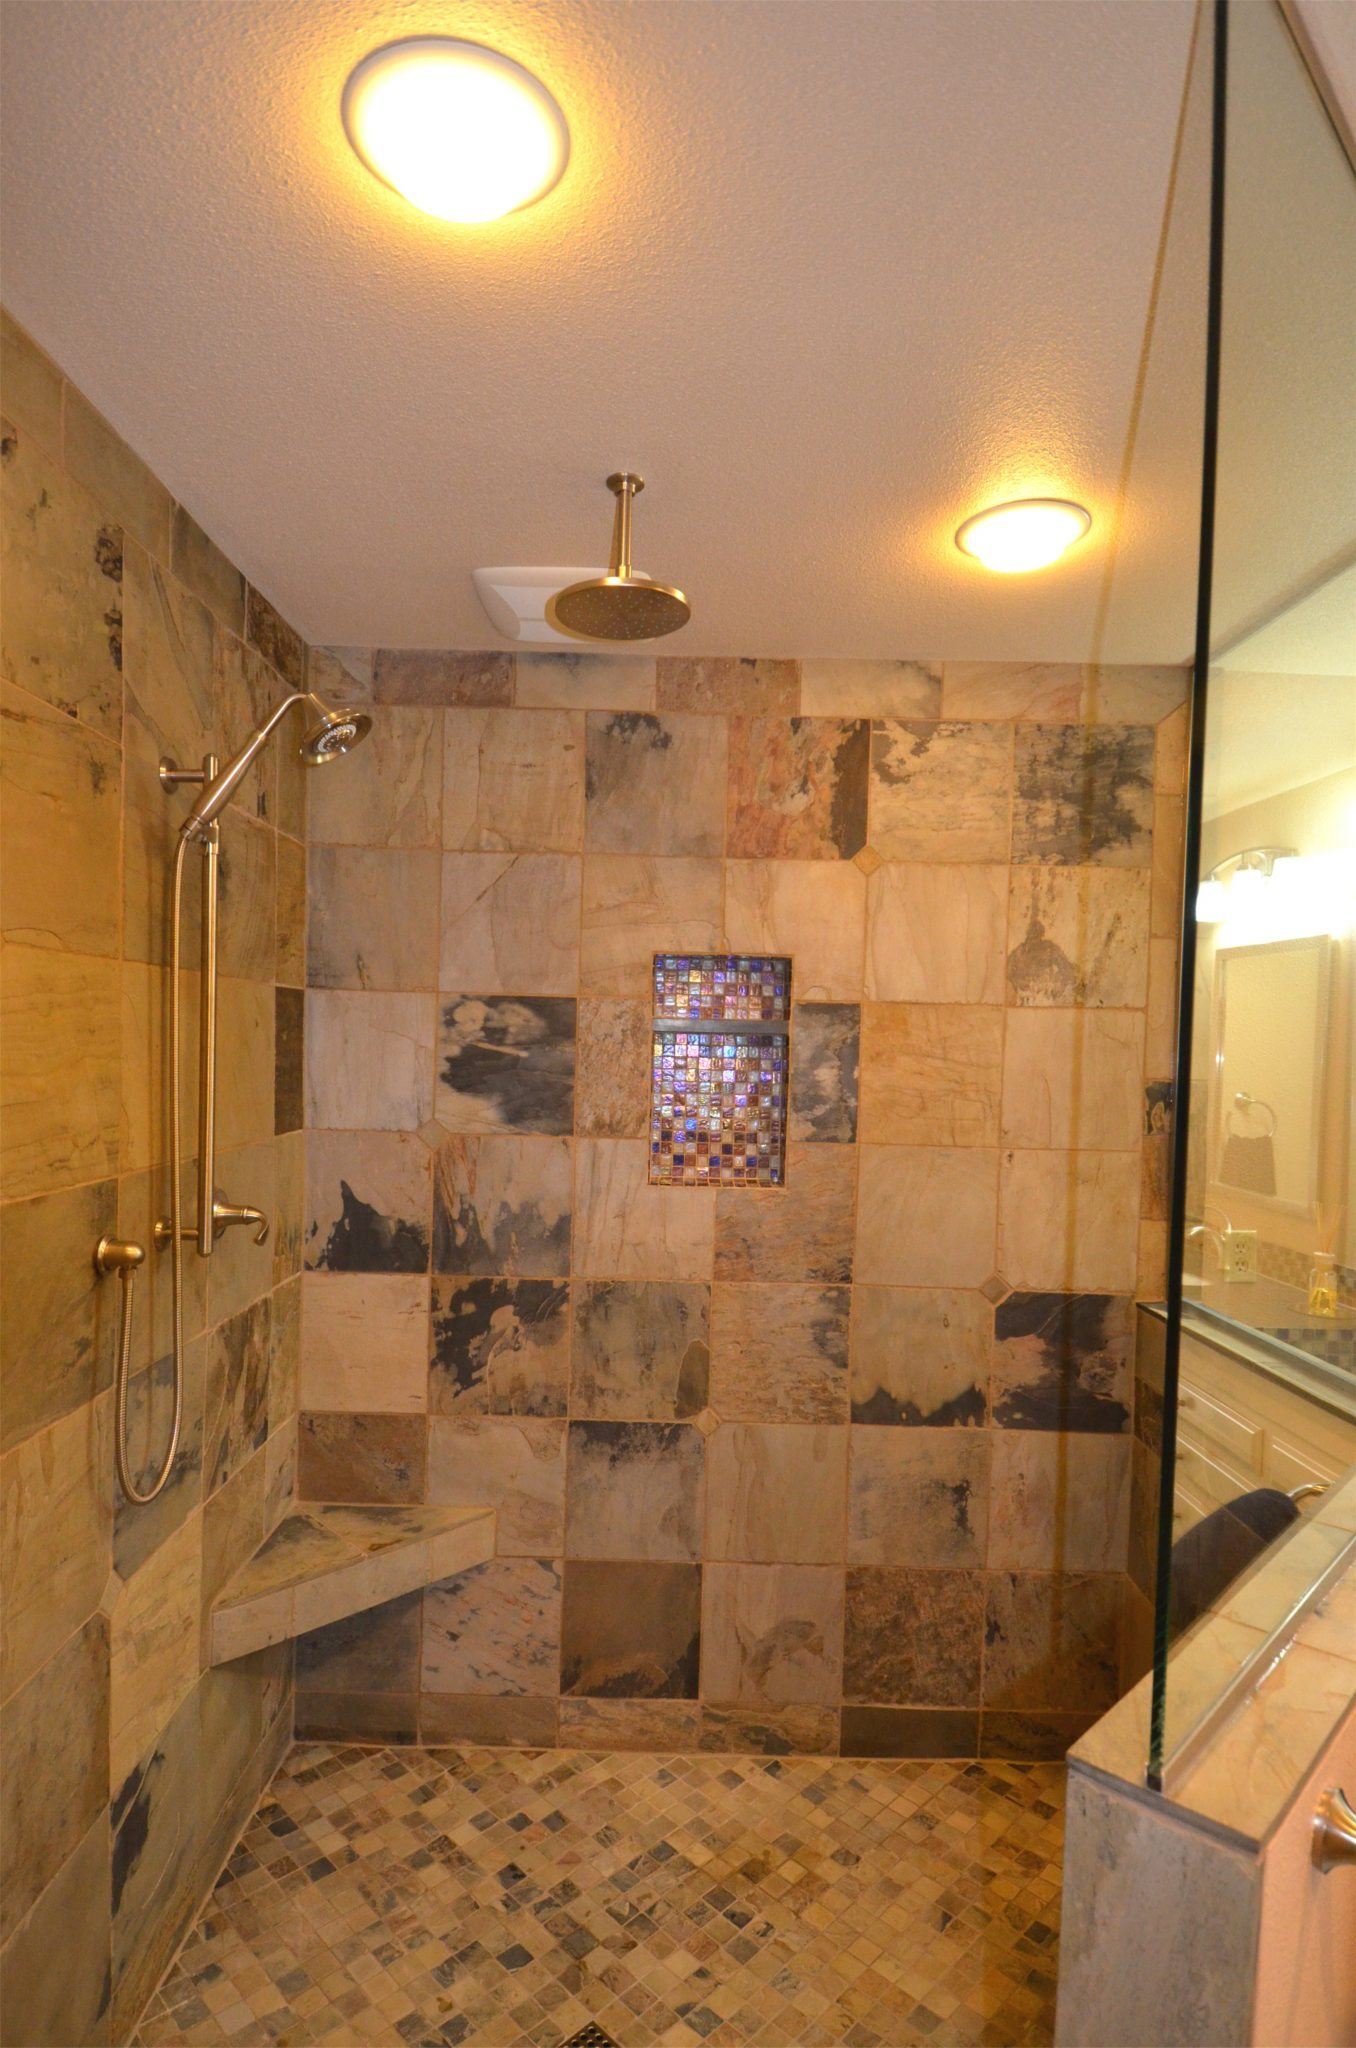 Remarkable Small Bathroom Designs with Walk-In Shower 3264 x 4928 · 2454 kB · jpeg